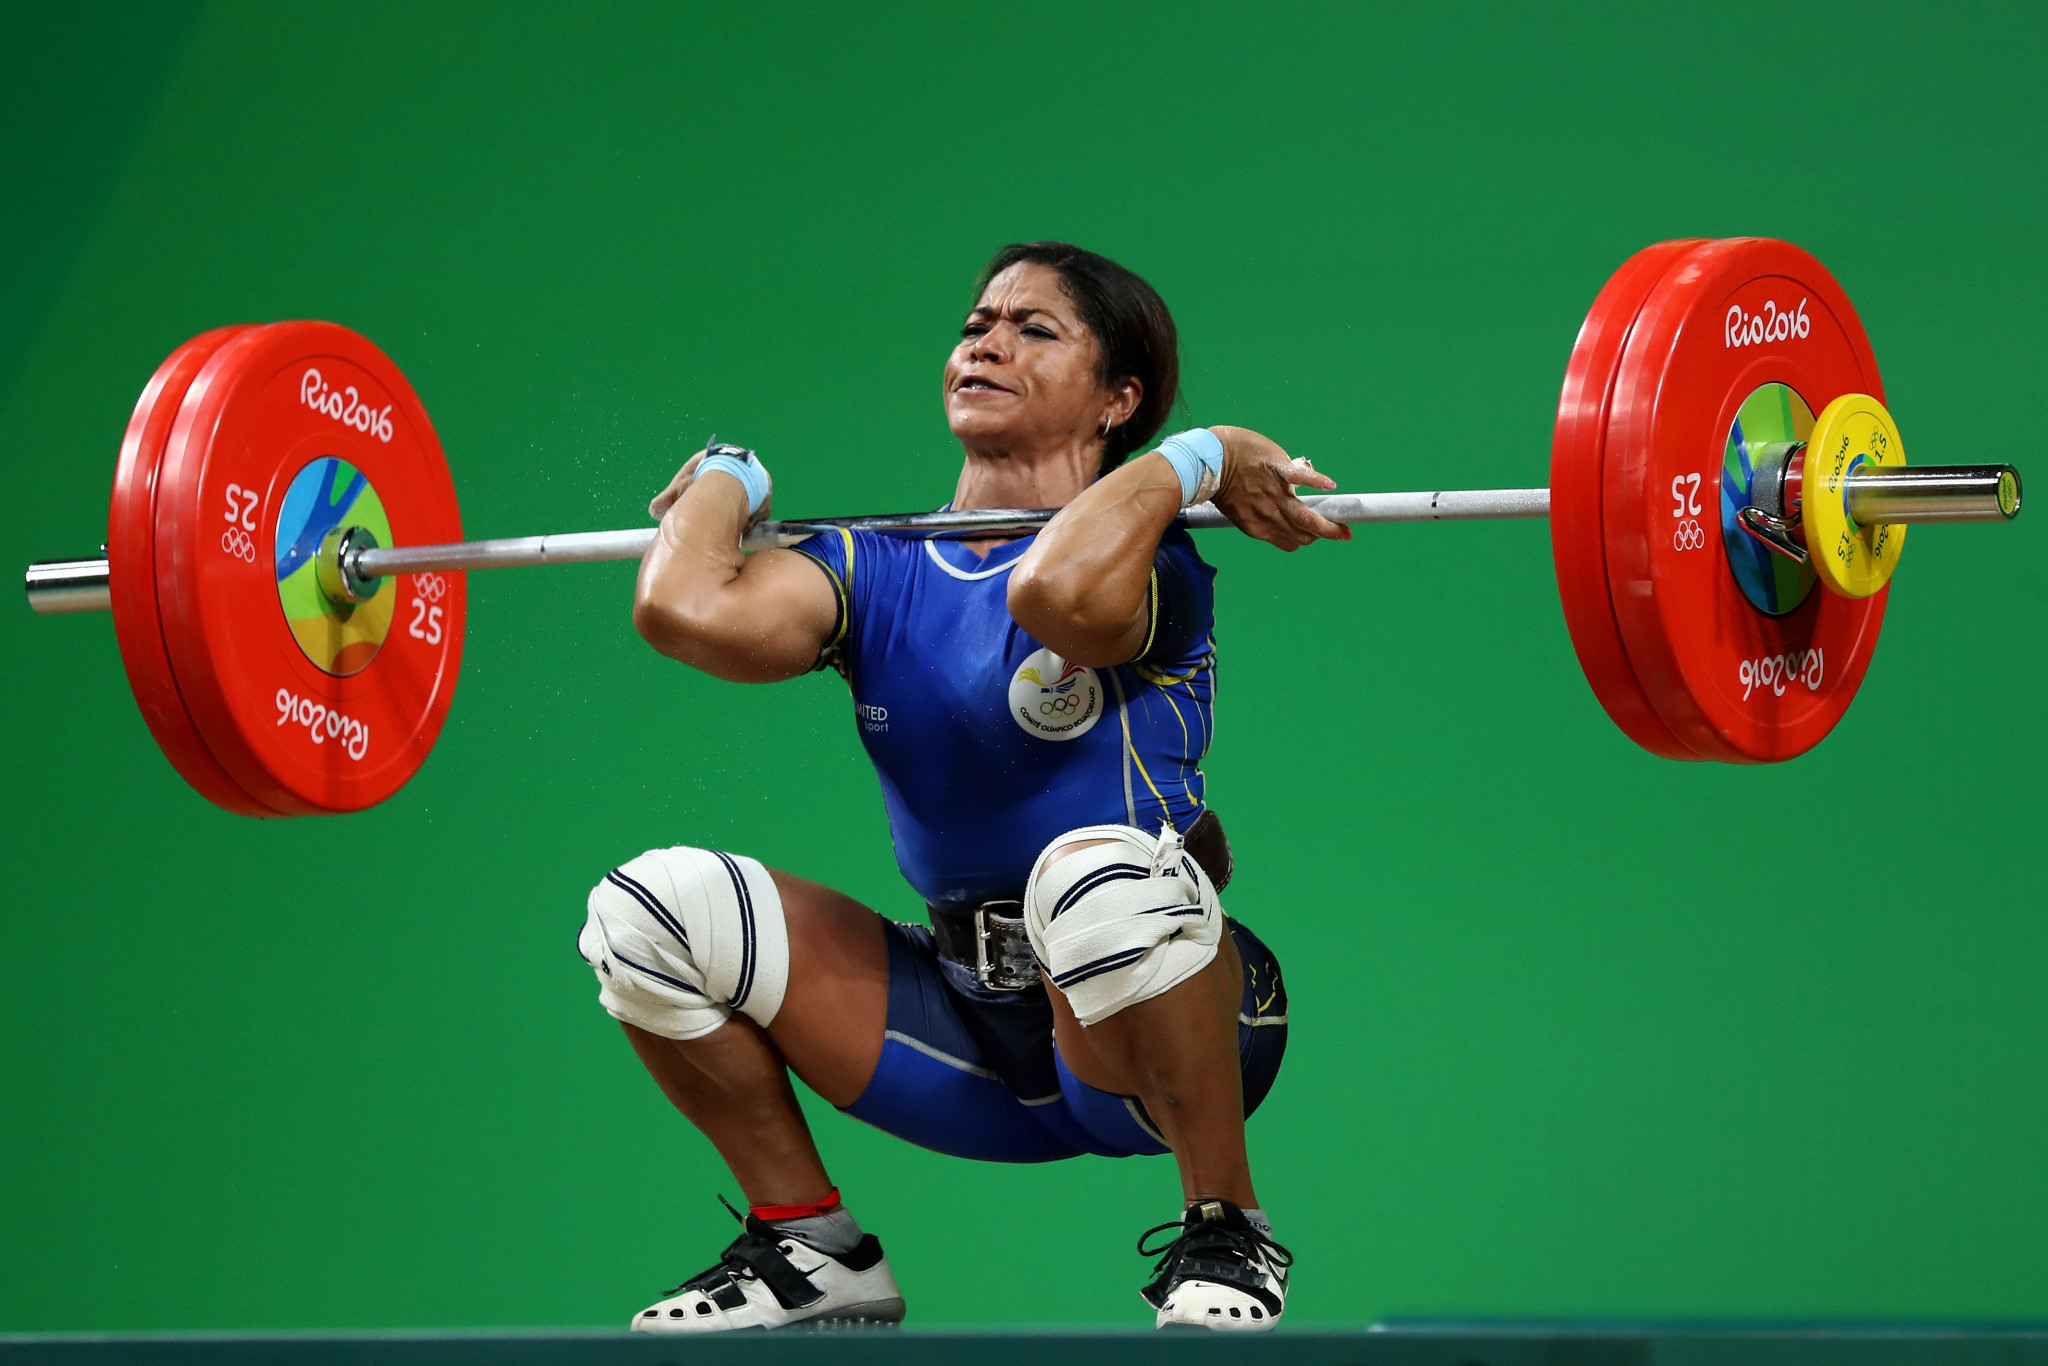 Ecuador's Alexandra Escobar had to settle for second in the women's 55kg category ©Getty Images